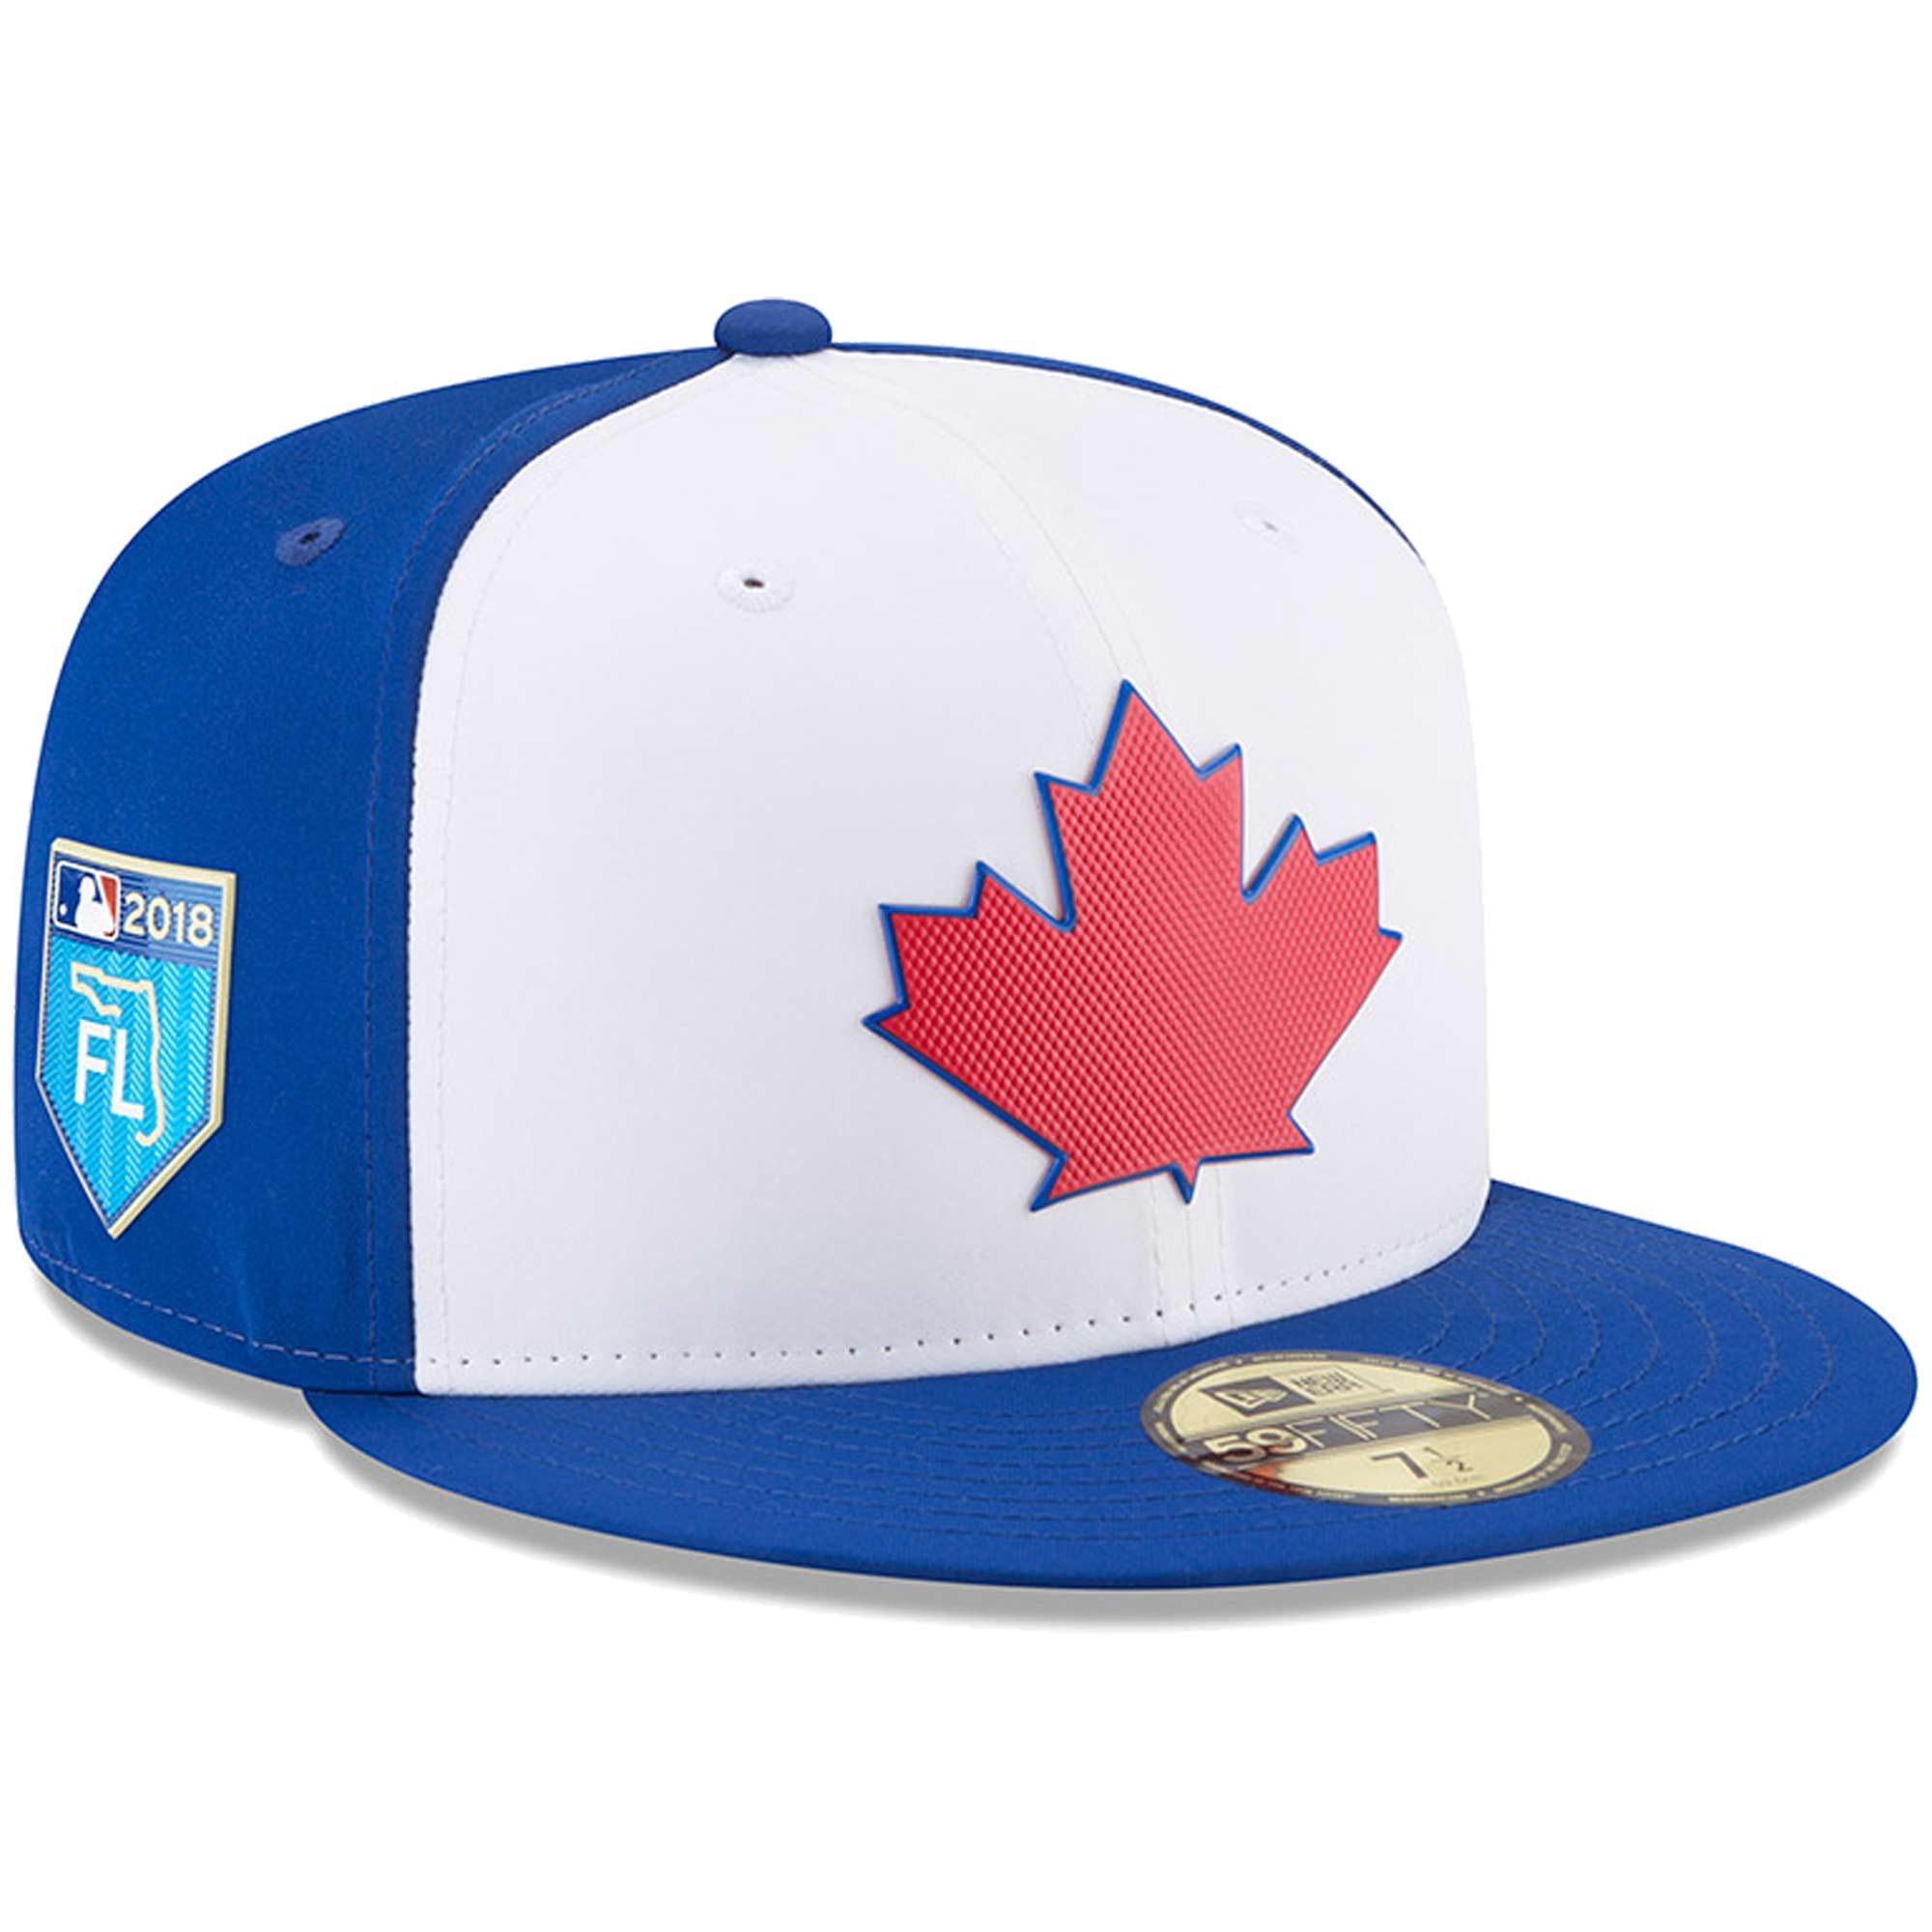 Toronto Blue Jays New Era 2018 Spring Training Collection Prolight 59FIFTY Fitted Hat - White